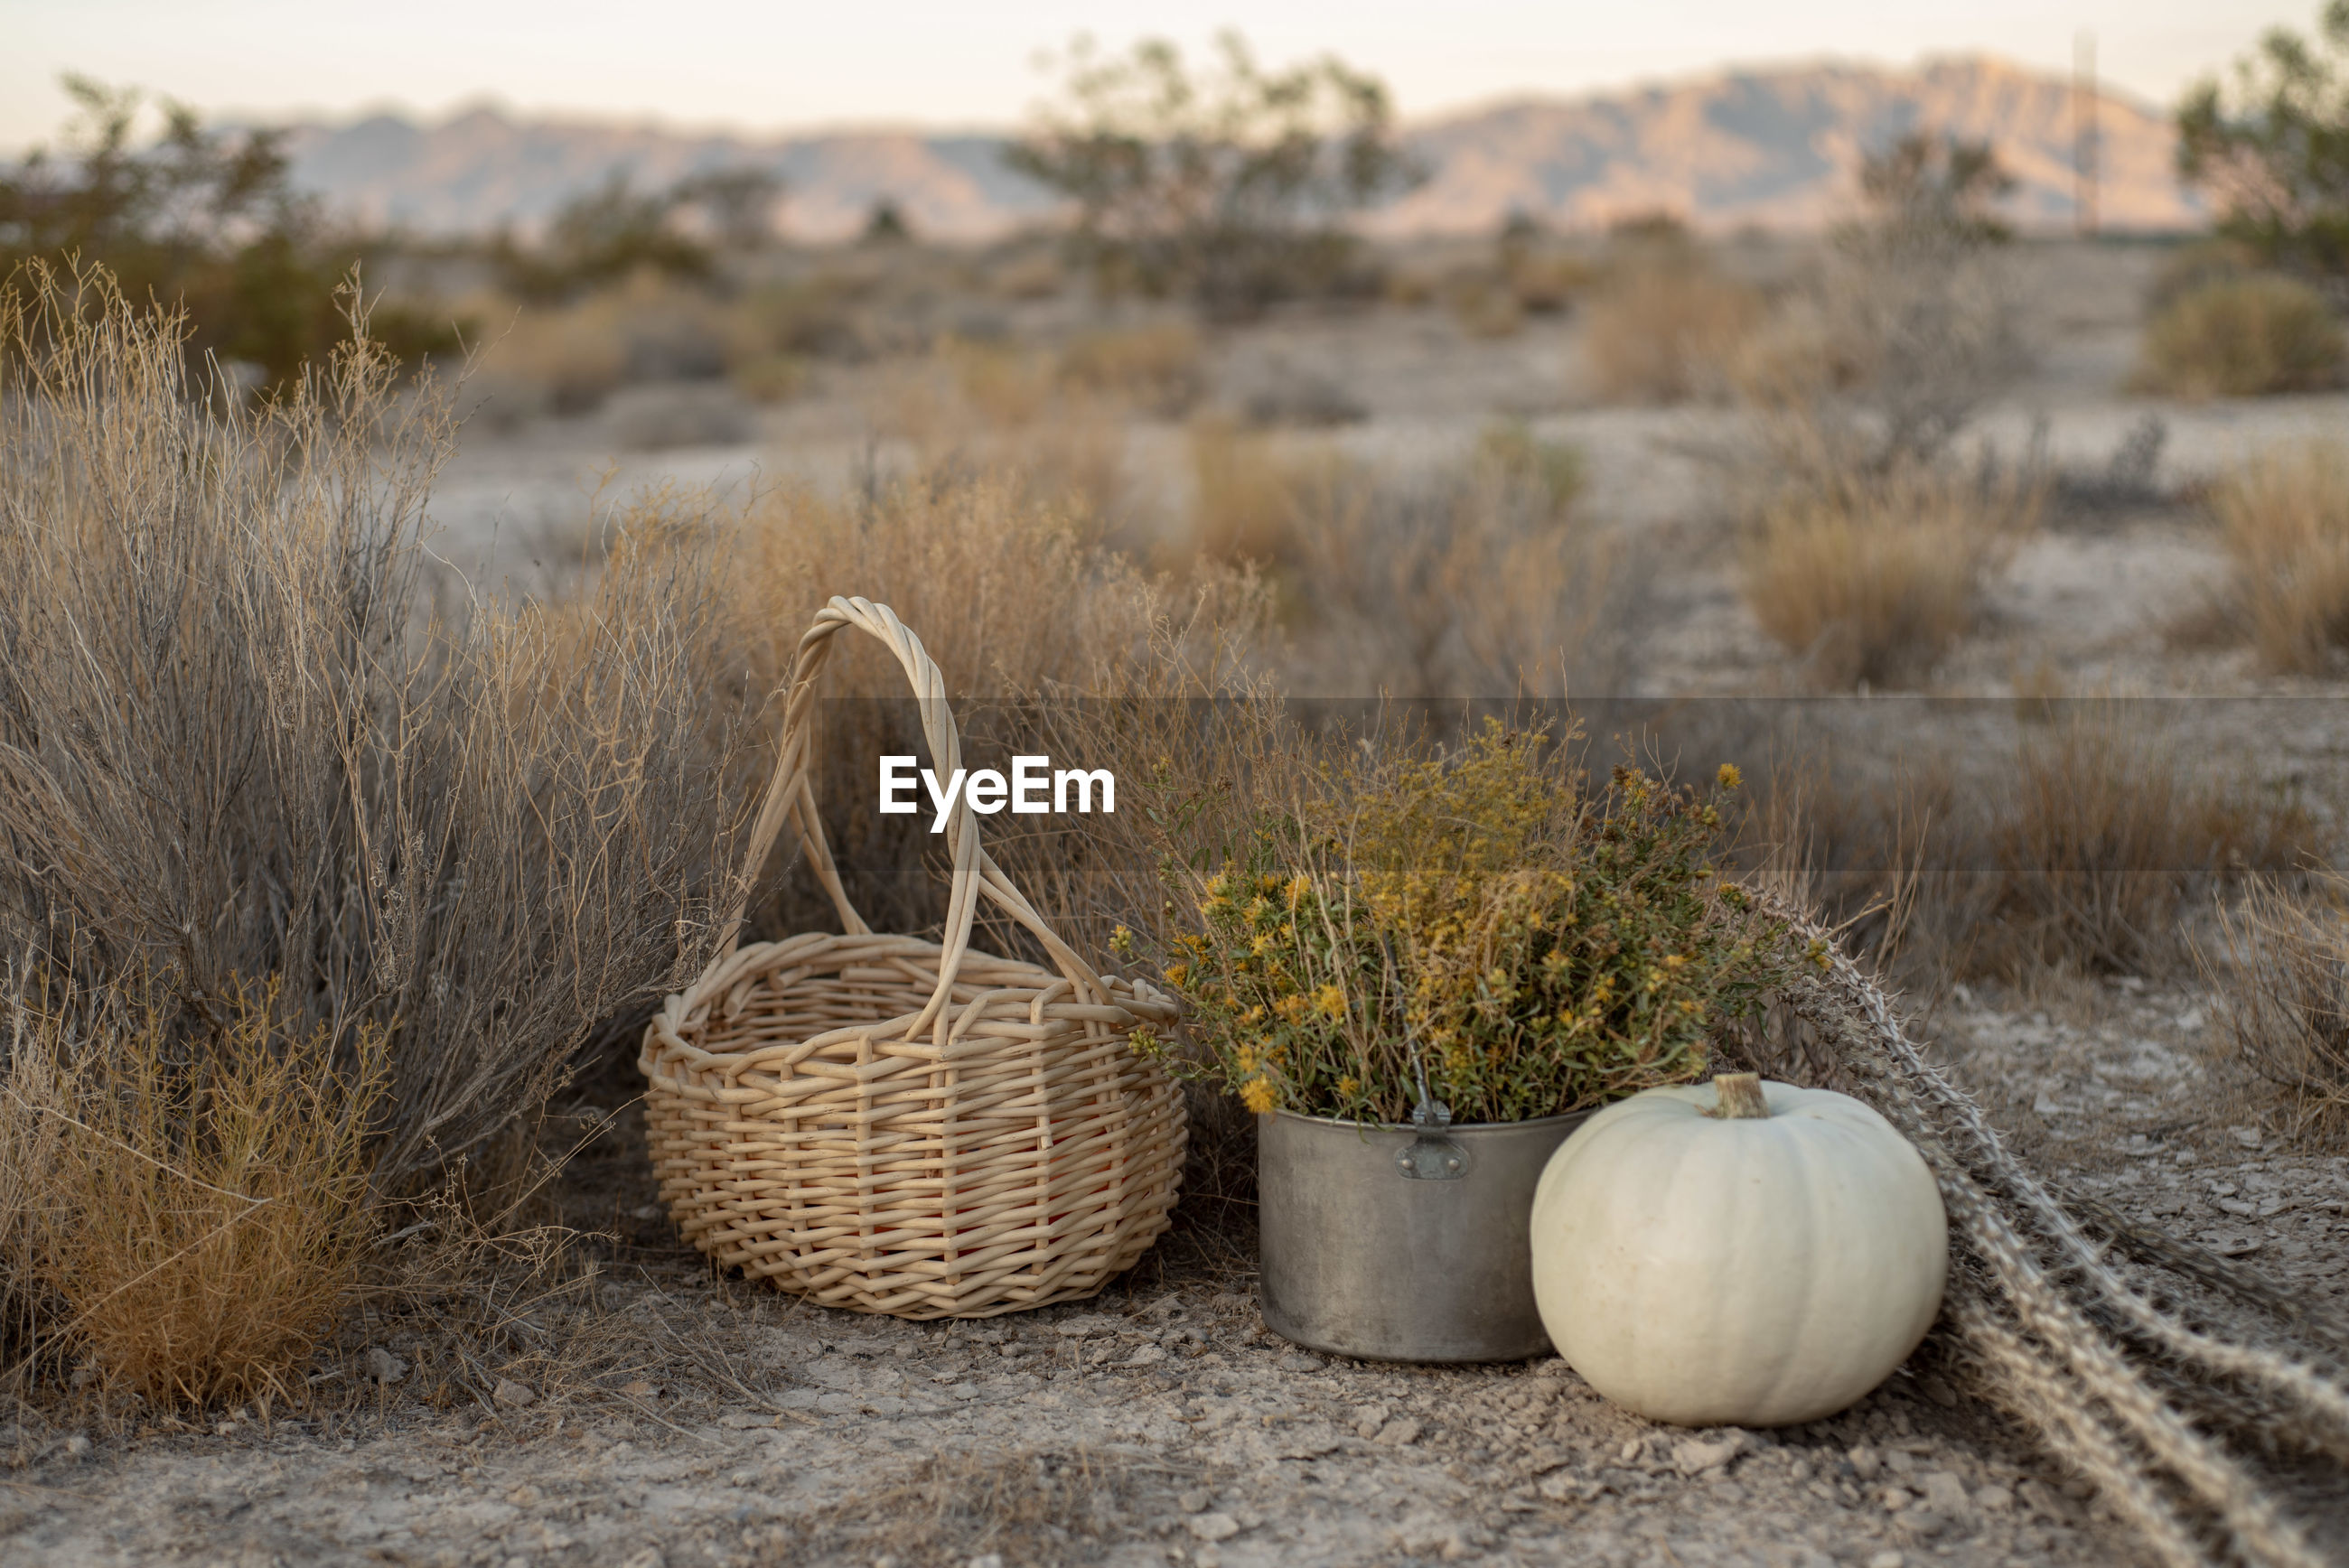 White pumpkin, dried cactus, basket in mojave desert autumn desert plants and earth colors